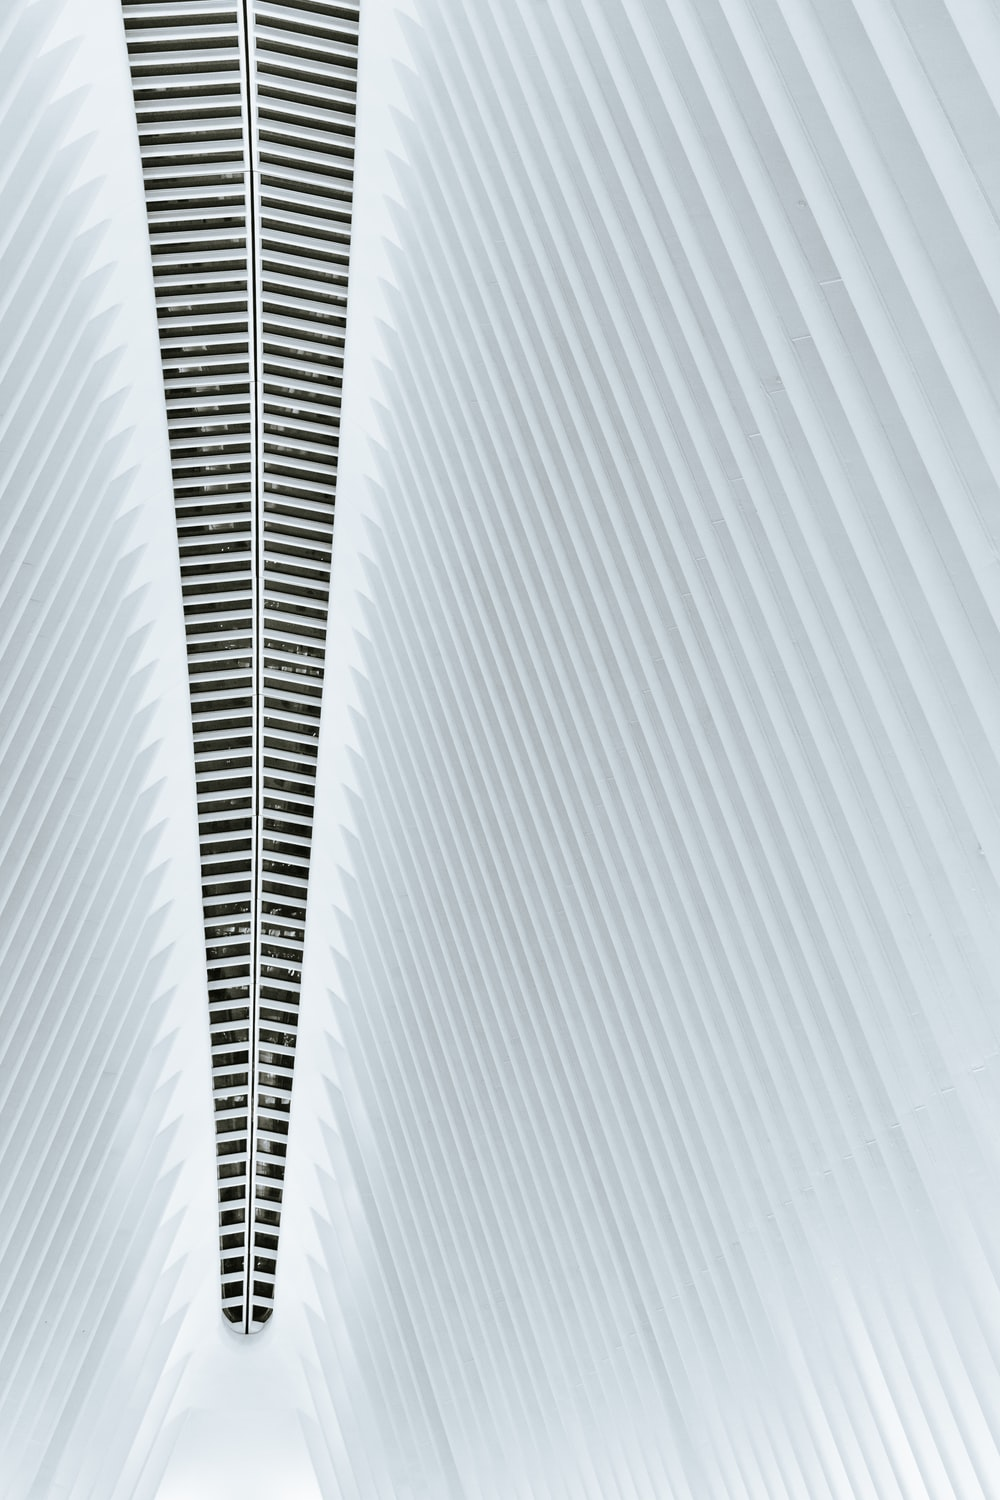 minimalist photography of building ceiling